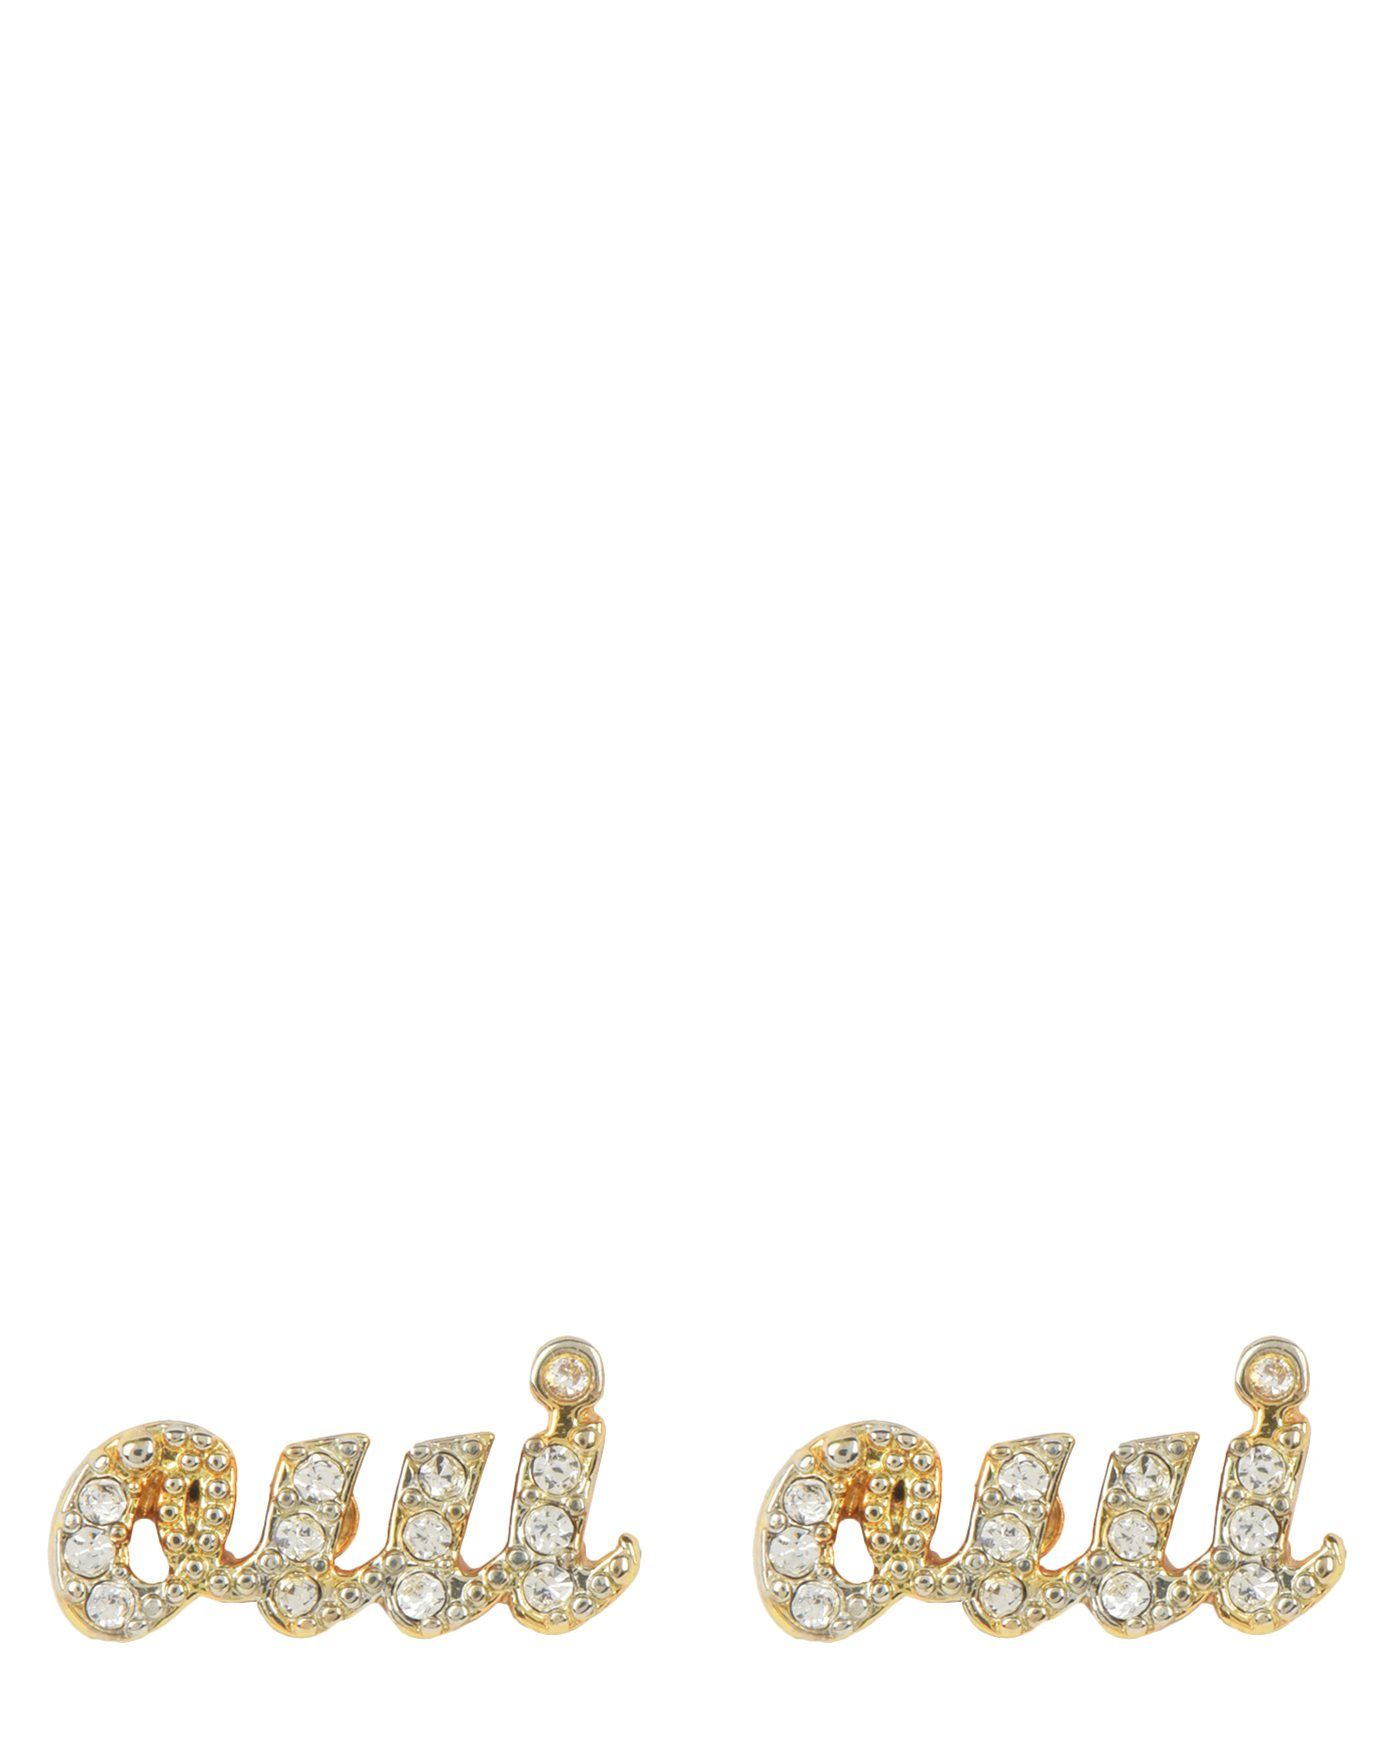 2019 year look- Couture Juicy spring earrings collection pictures